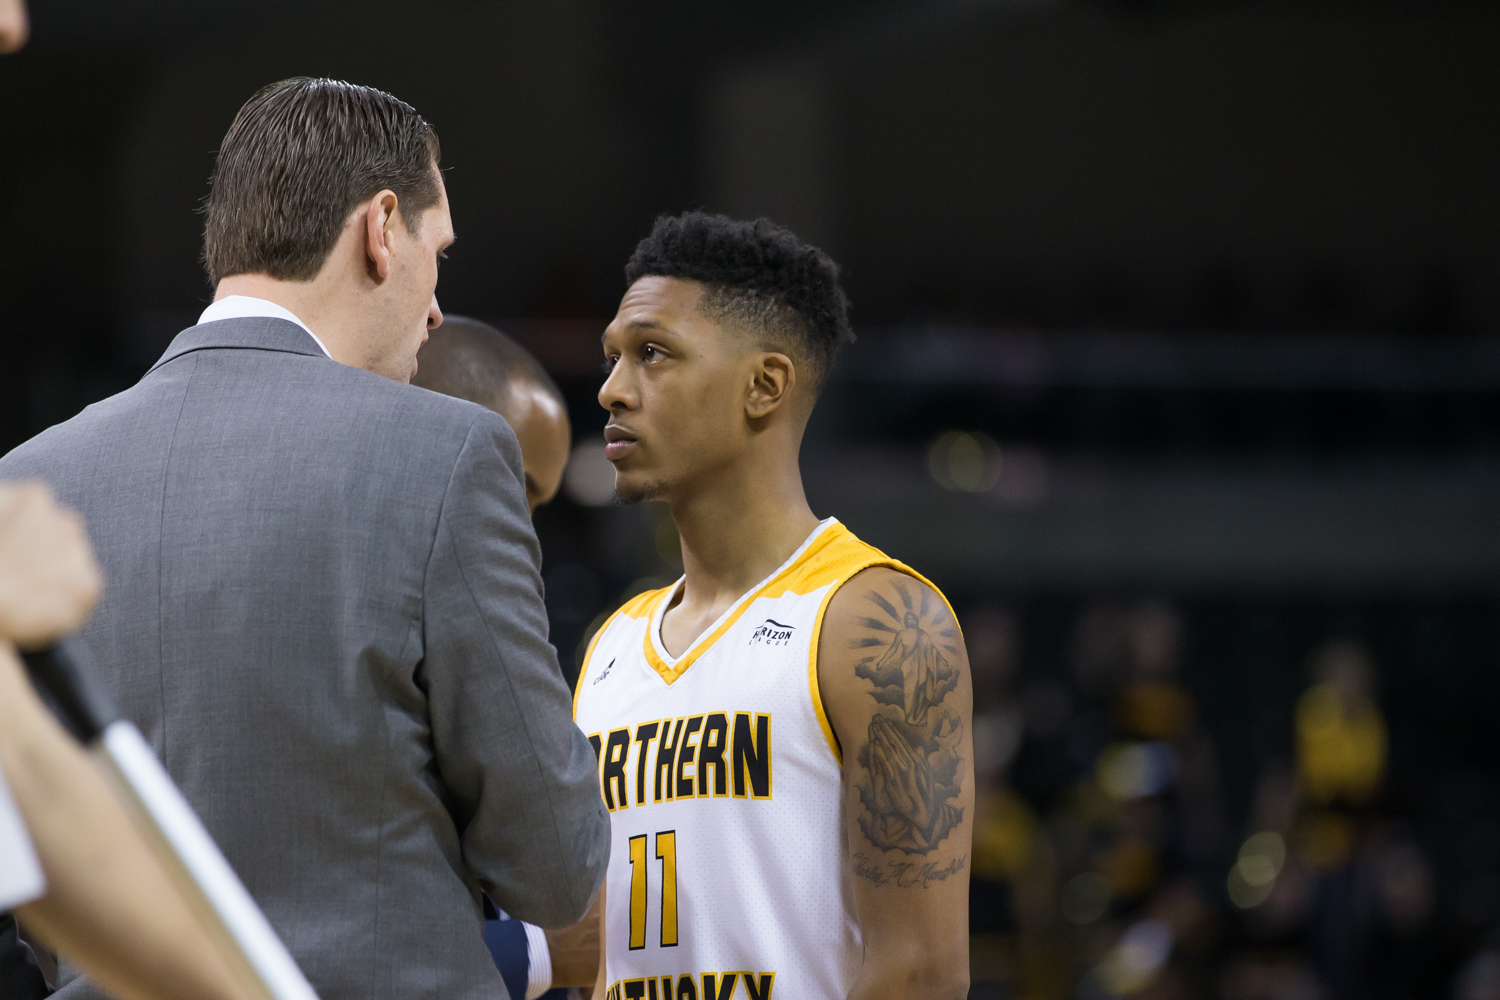 Head Coach John Brannen talks to Mason Faulkner (11) during the game against Youngstown State.